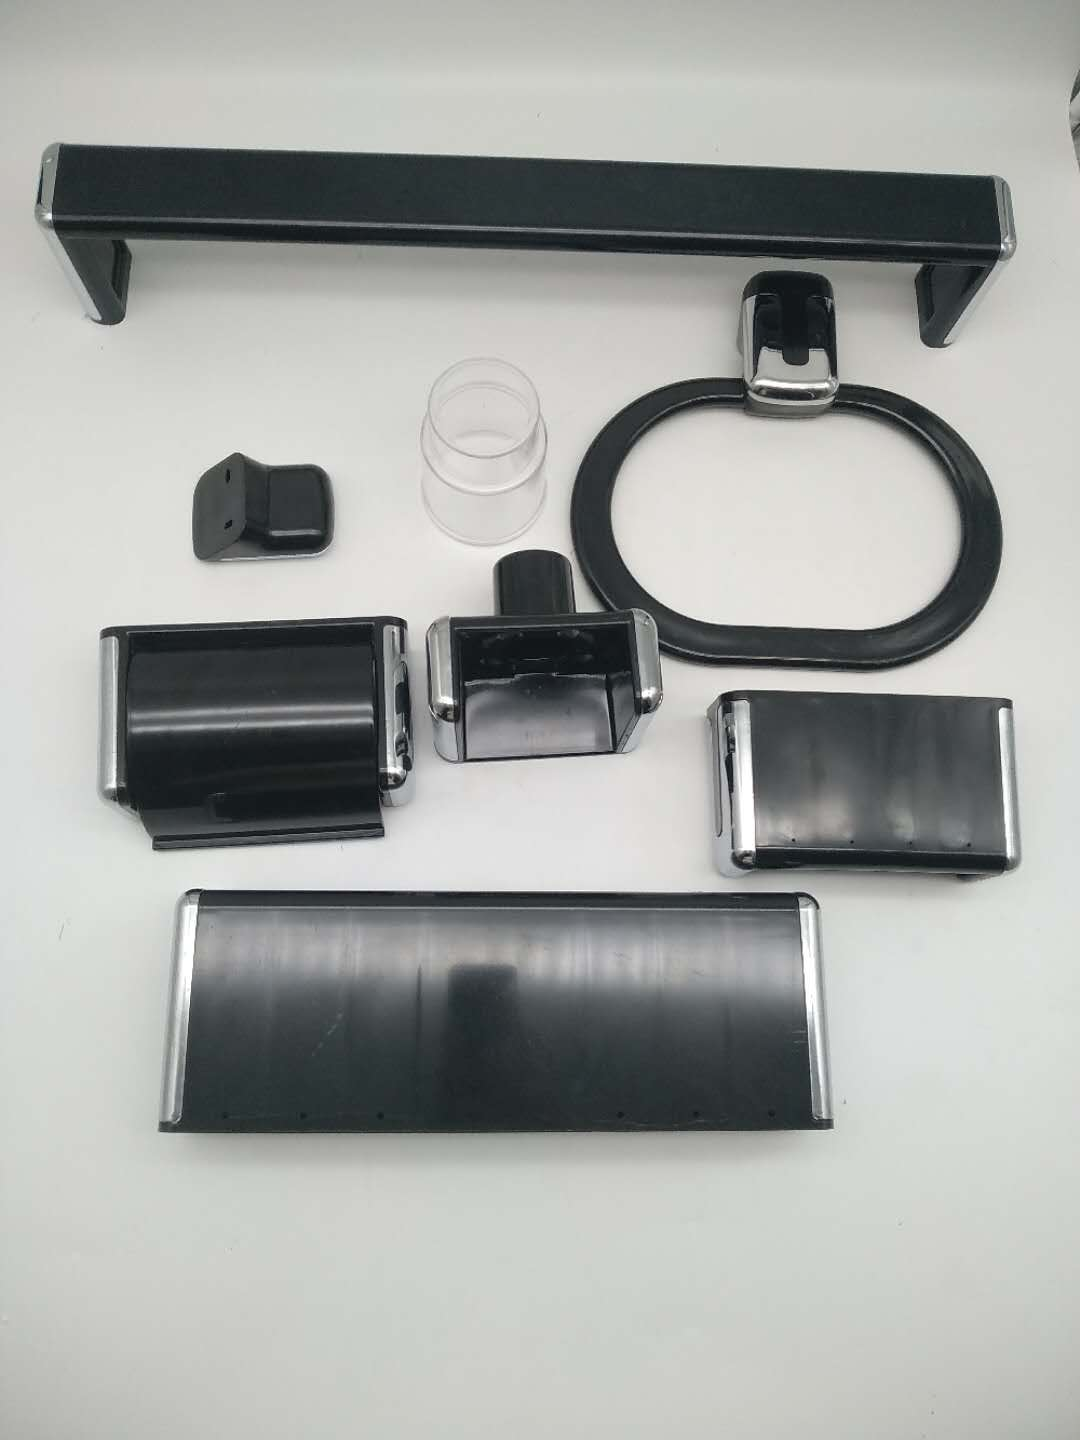 amazon complete black bathroom accessories set